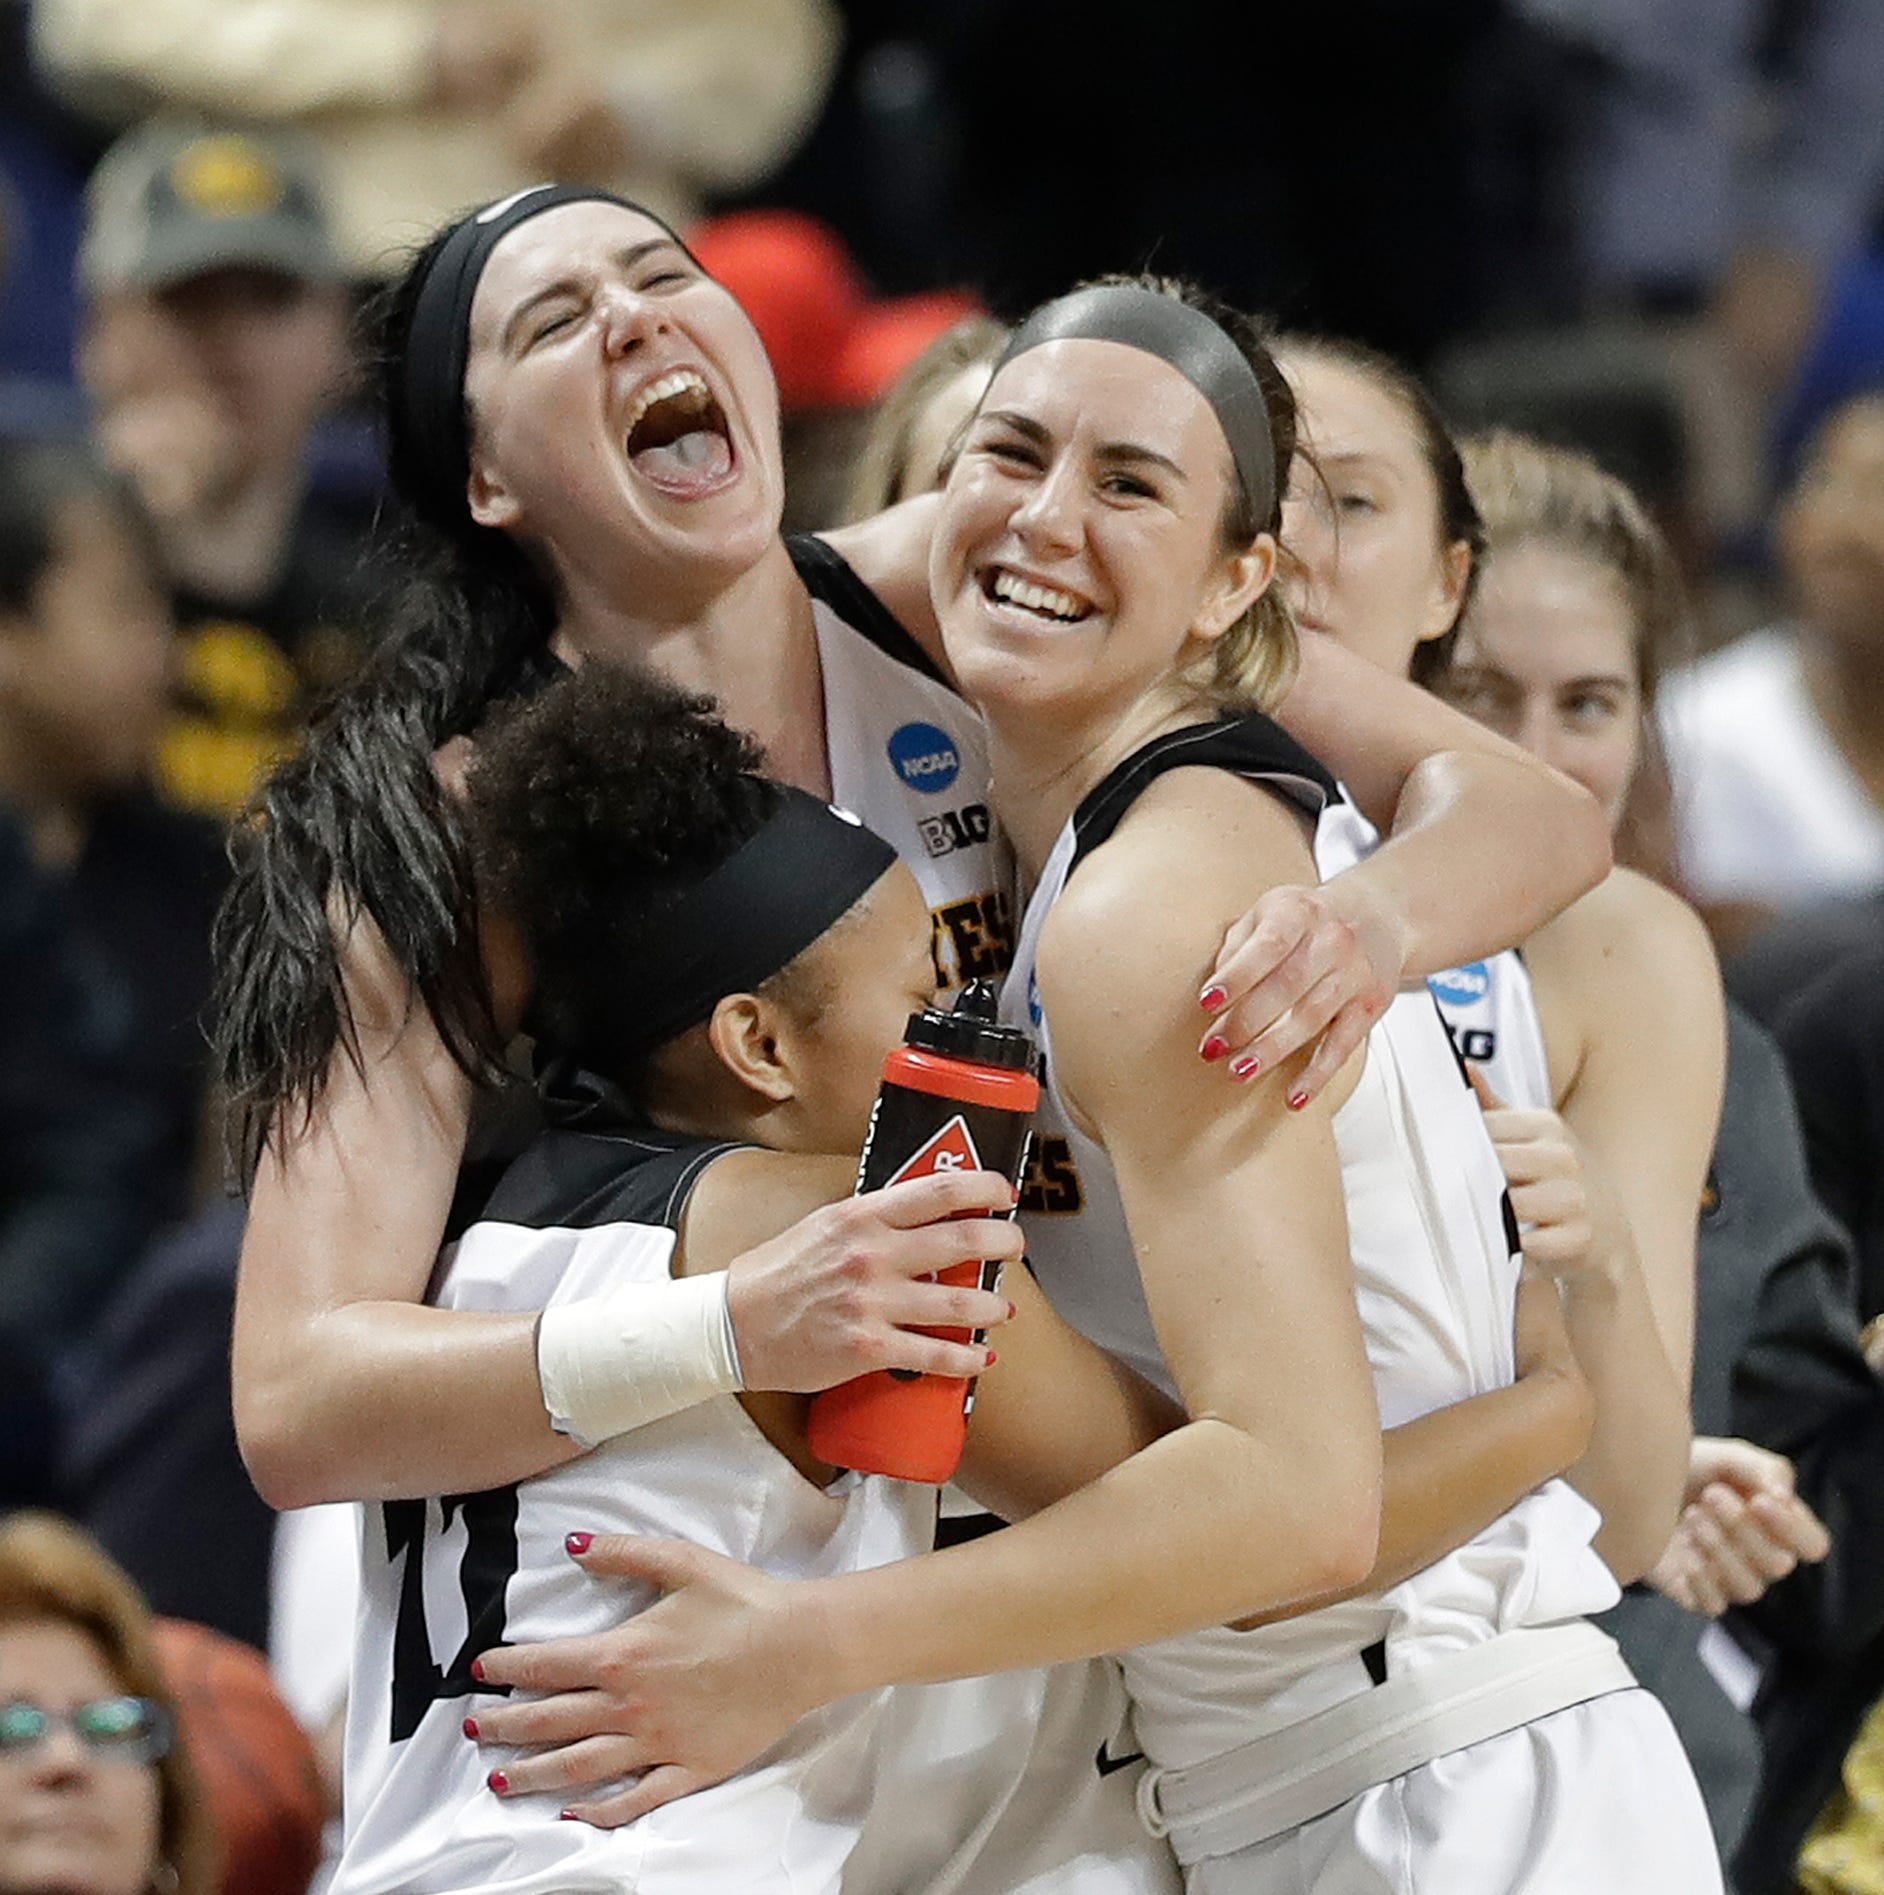 'Peaking at the right time': Iowa buries North Carolina State to reach first Elite Eight in 26 years